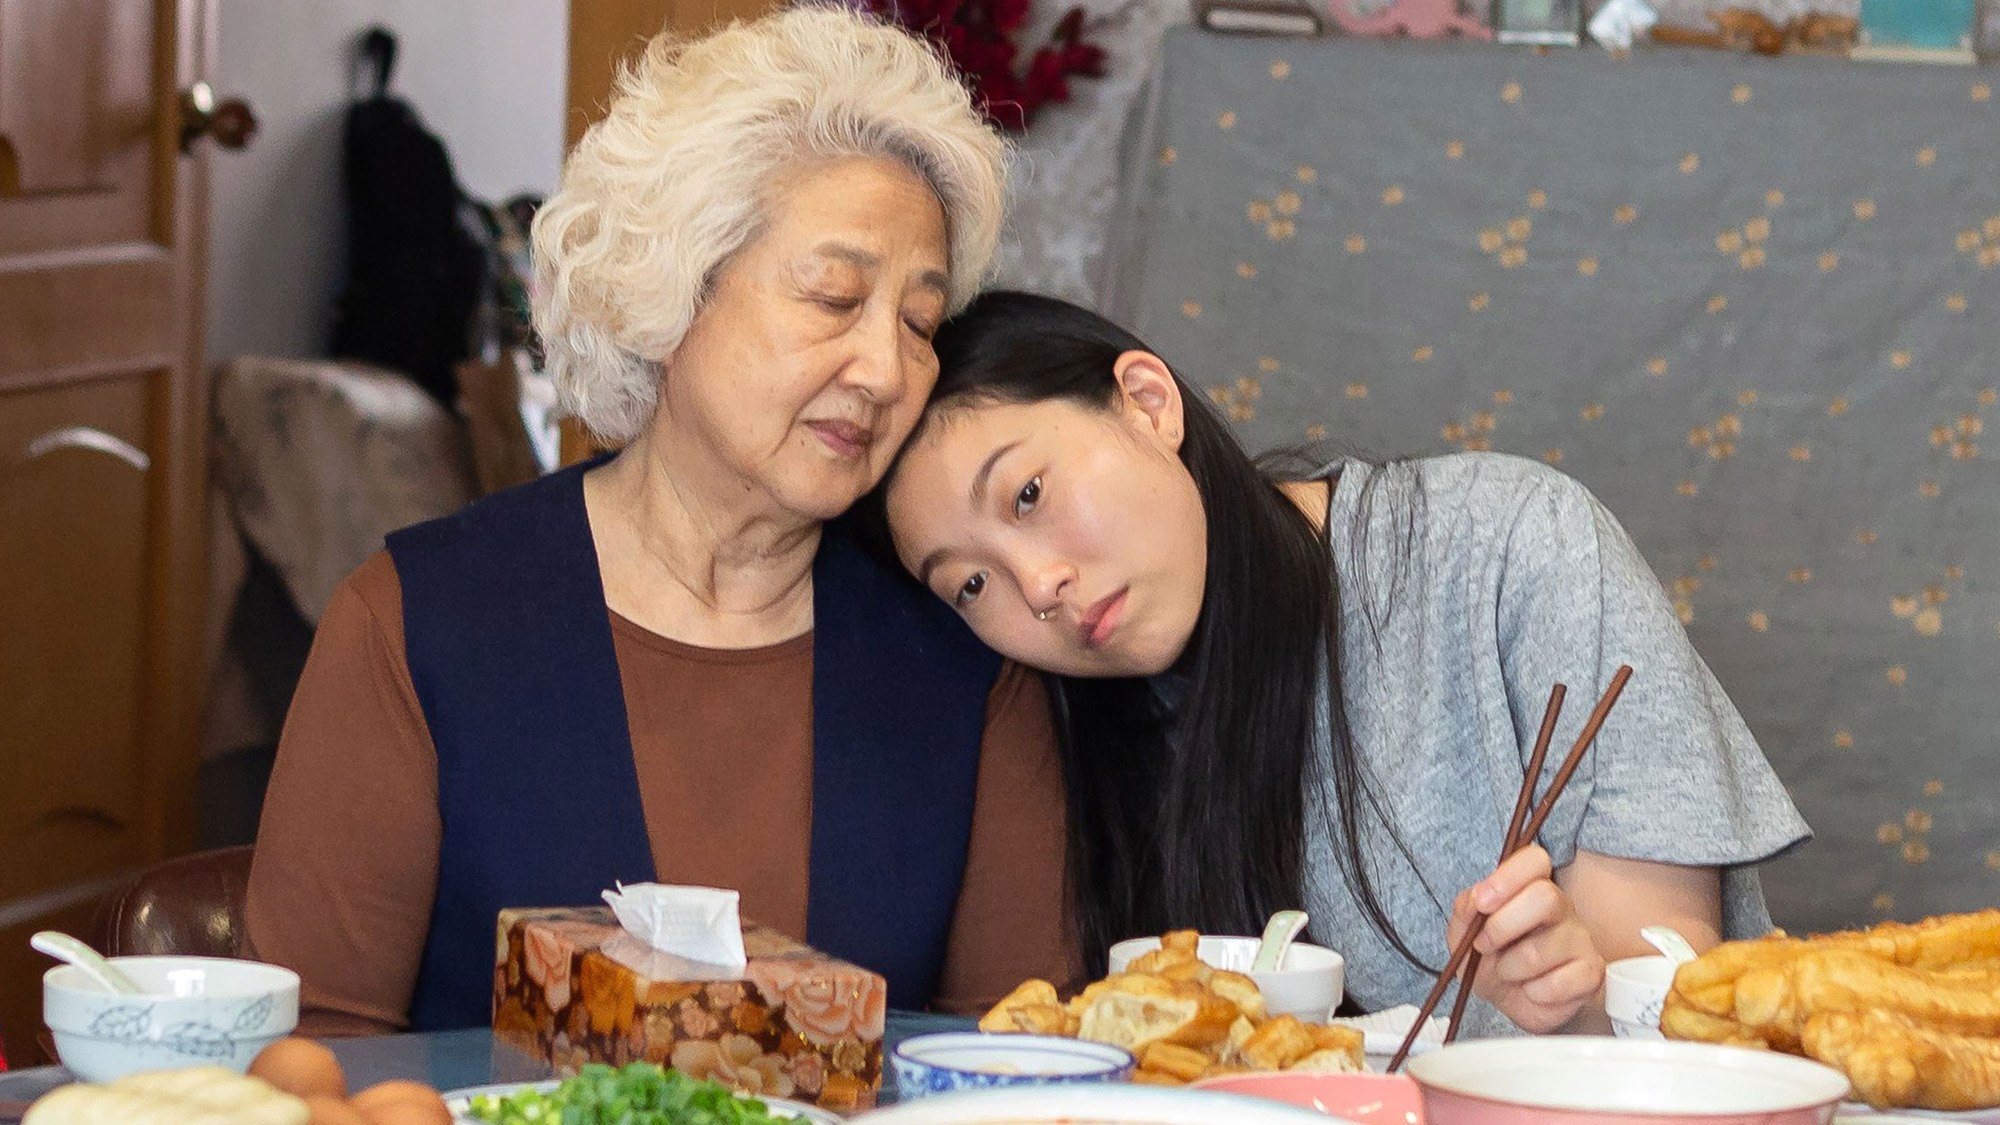 Best movies on Amazon Prime Video: The Farewell